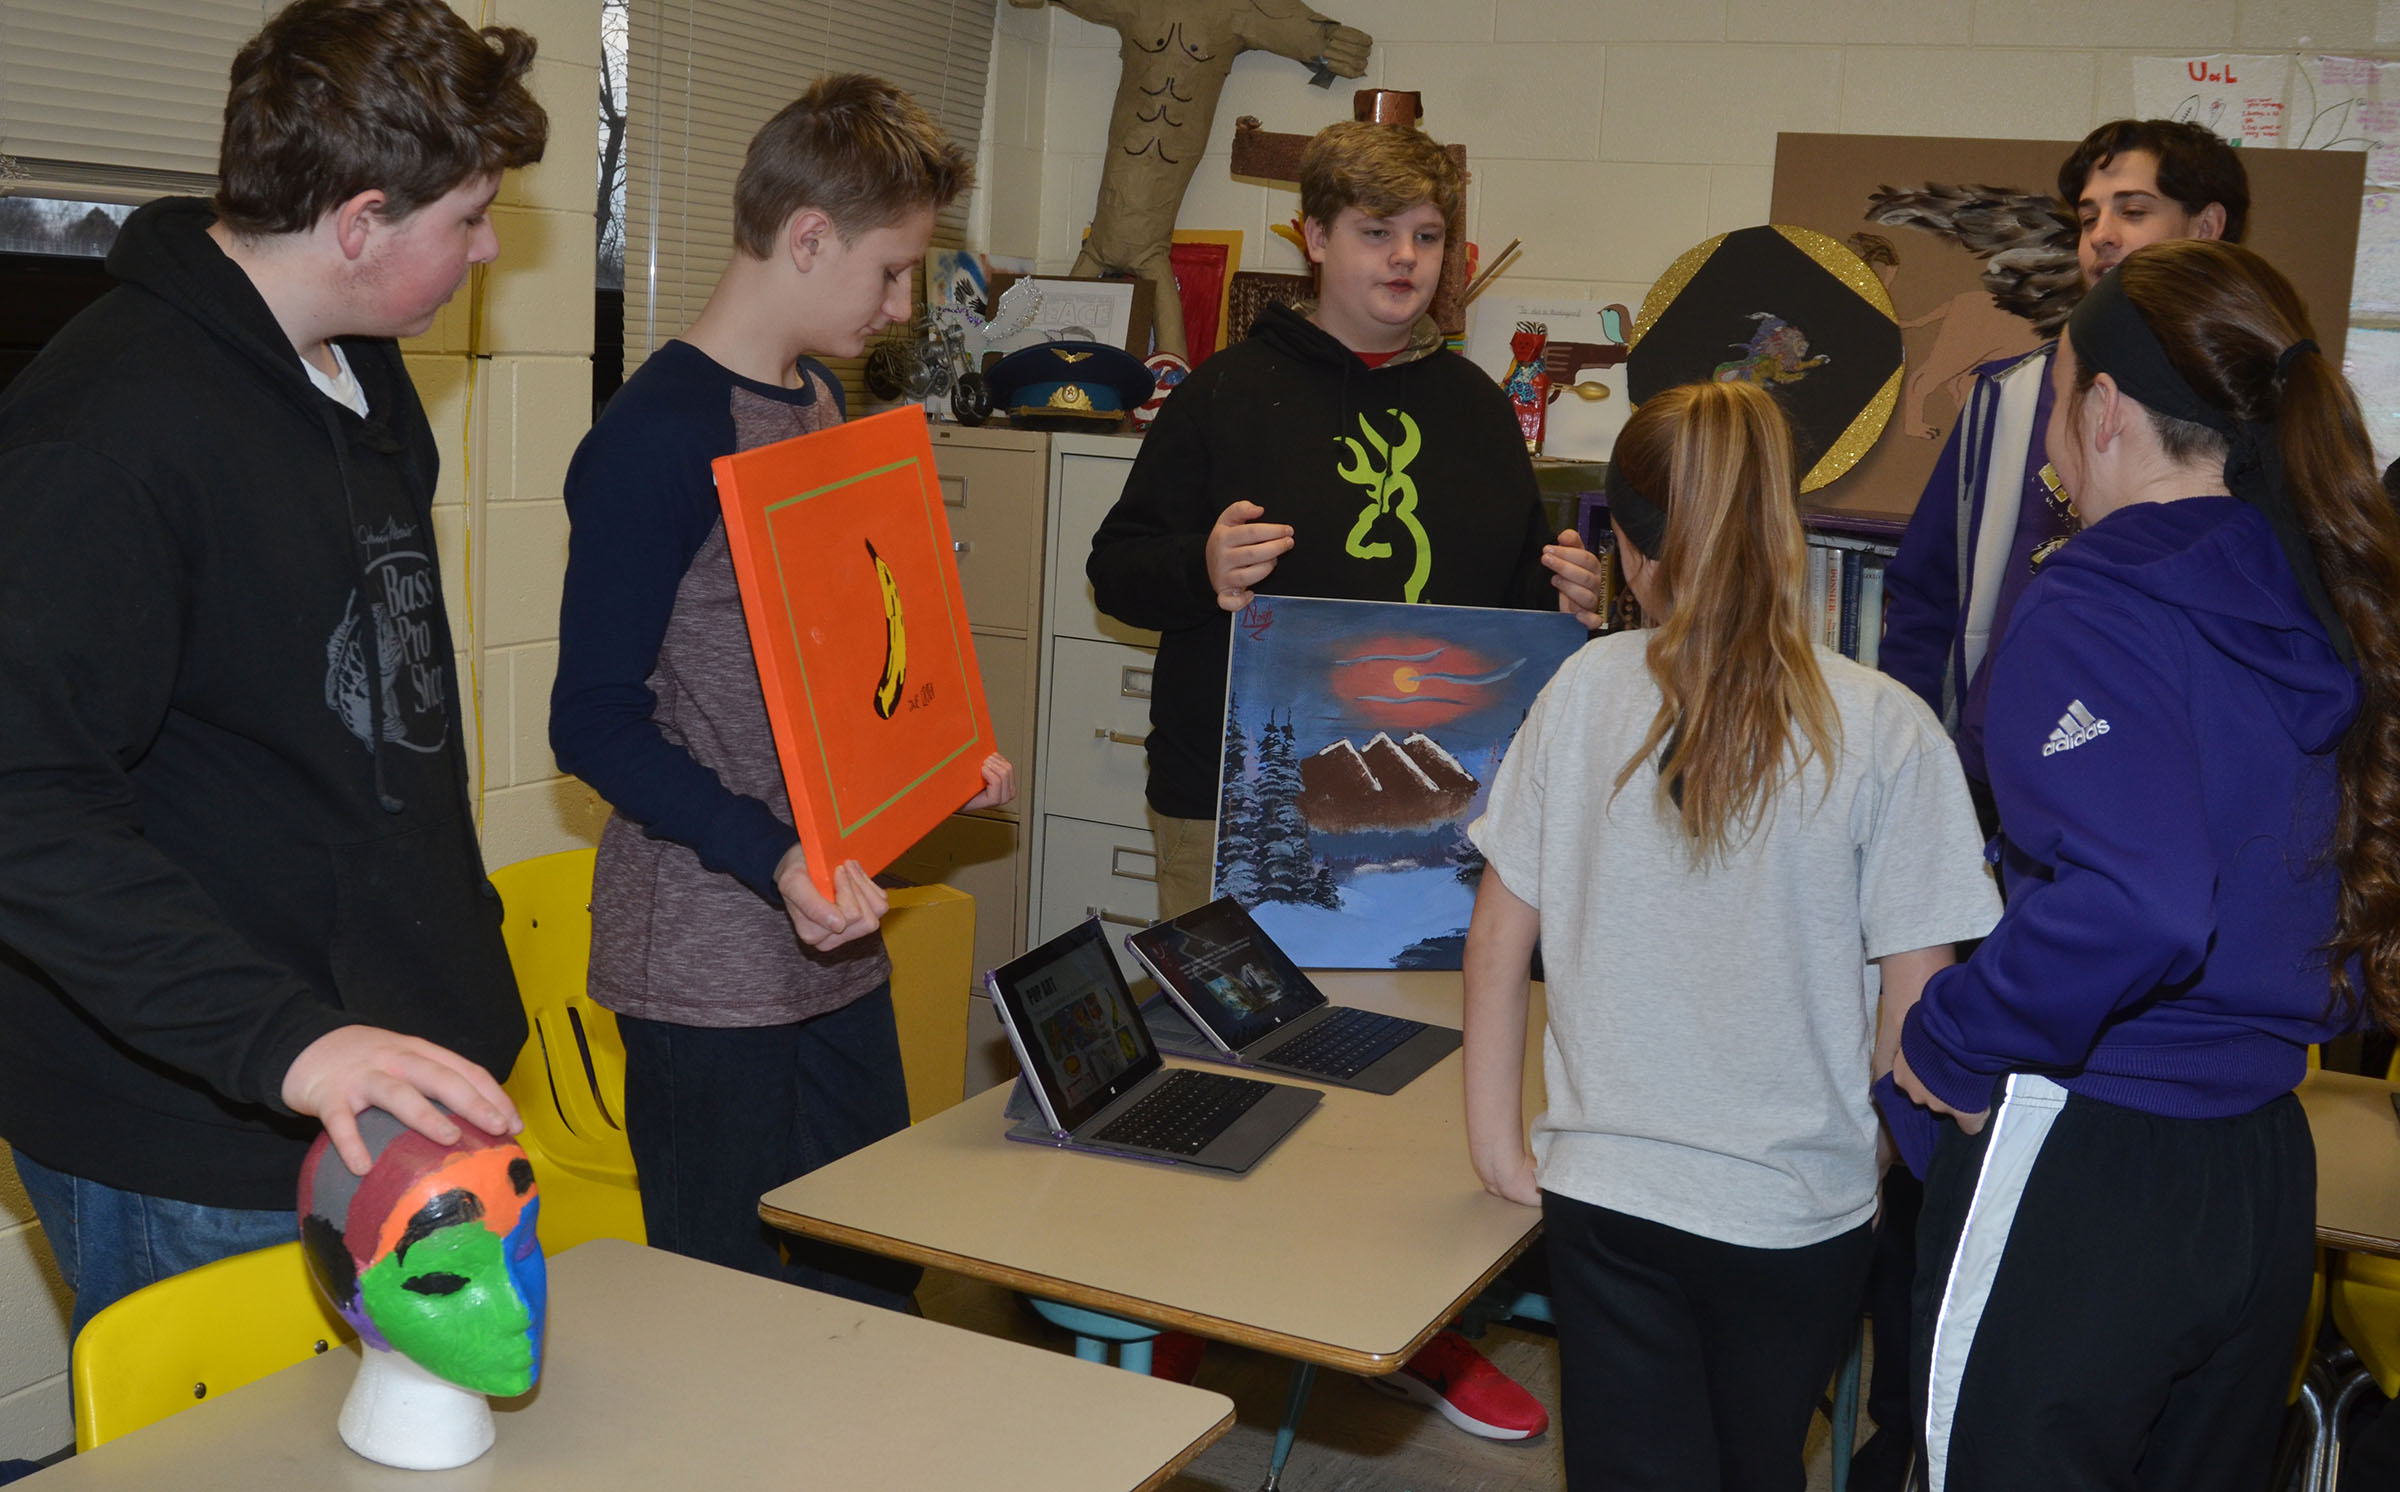 From left, CMS eighth-graders Alex Howard, Jake Dicken, Noah Mardis and John Orberson display their artwork.